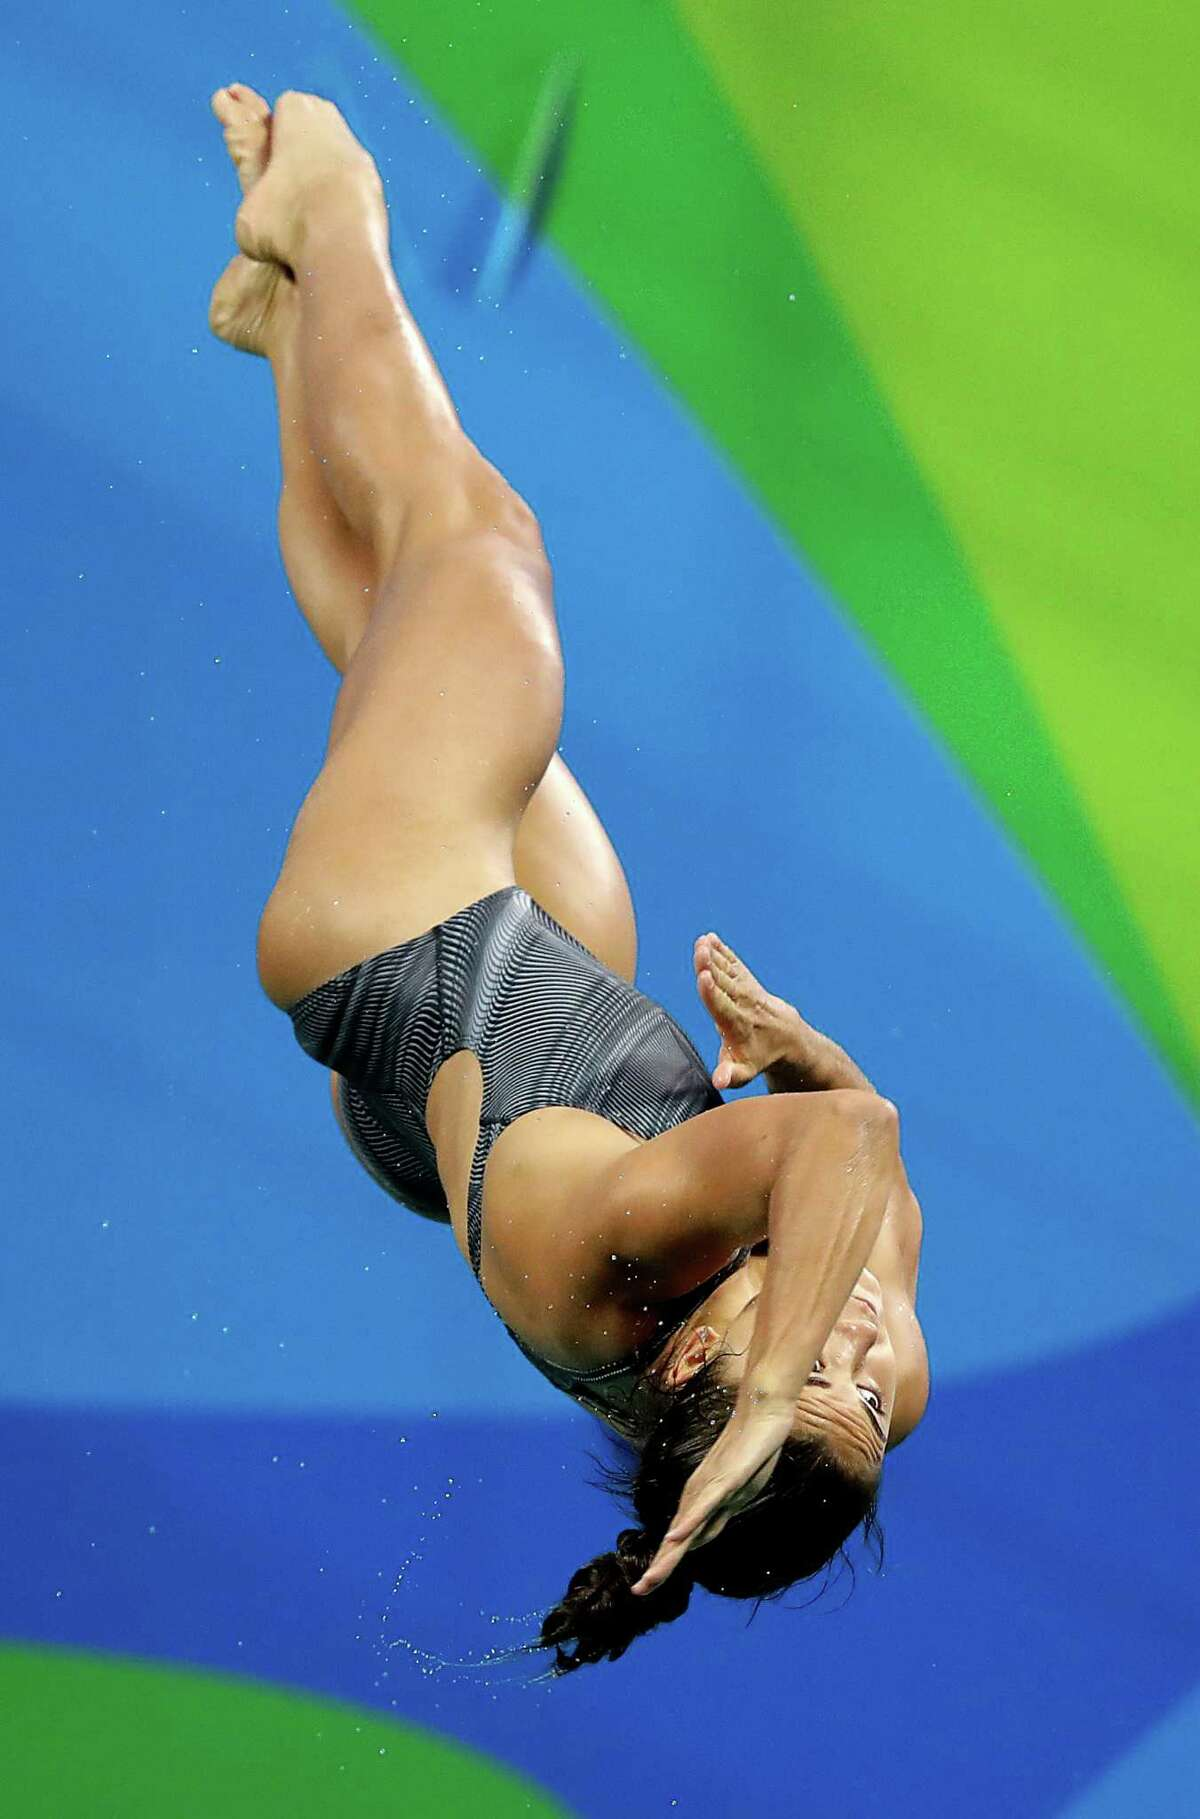 The Woodlands' Kassidy Cook placed eighth with a score of 327.75 during Friday's 3-meter springboard preliminary round. She moves on to the semifinals, which will be held Saturday.